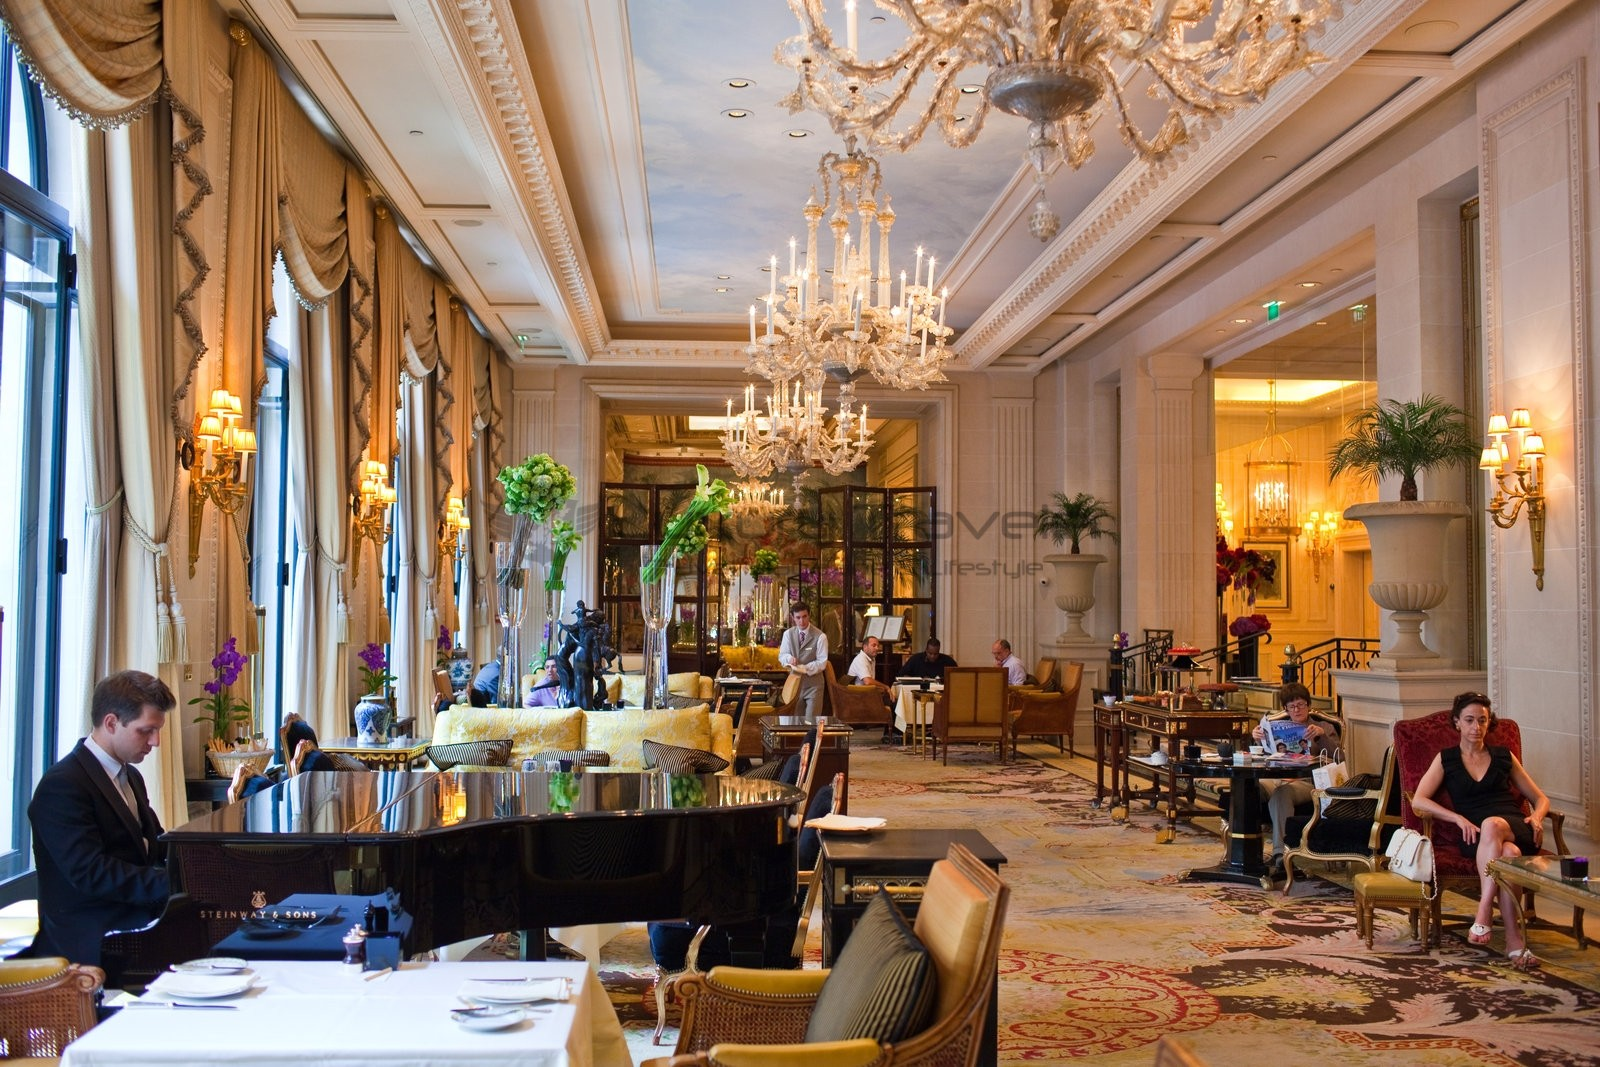 Le cinq paris michelin star restaurant four seasons luxury traveler - Boutique michelin paris ...